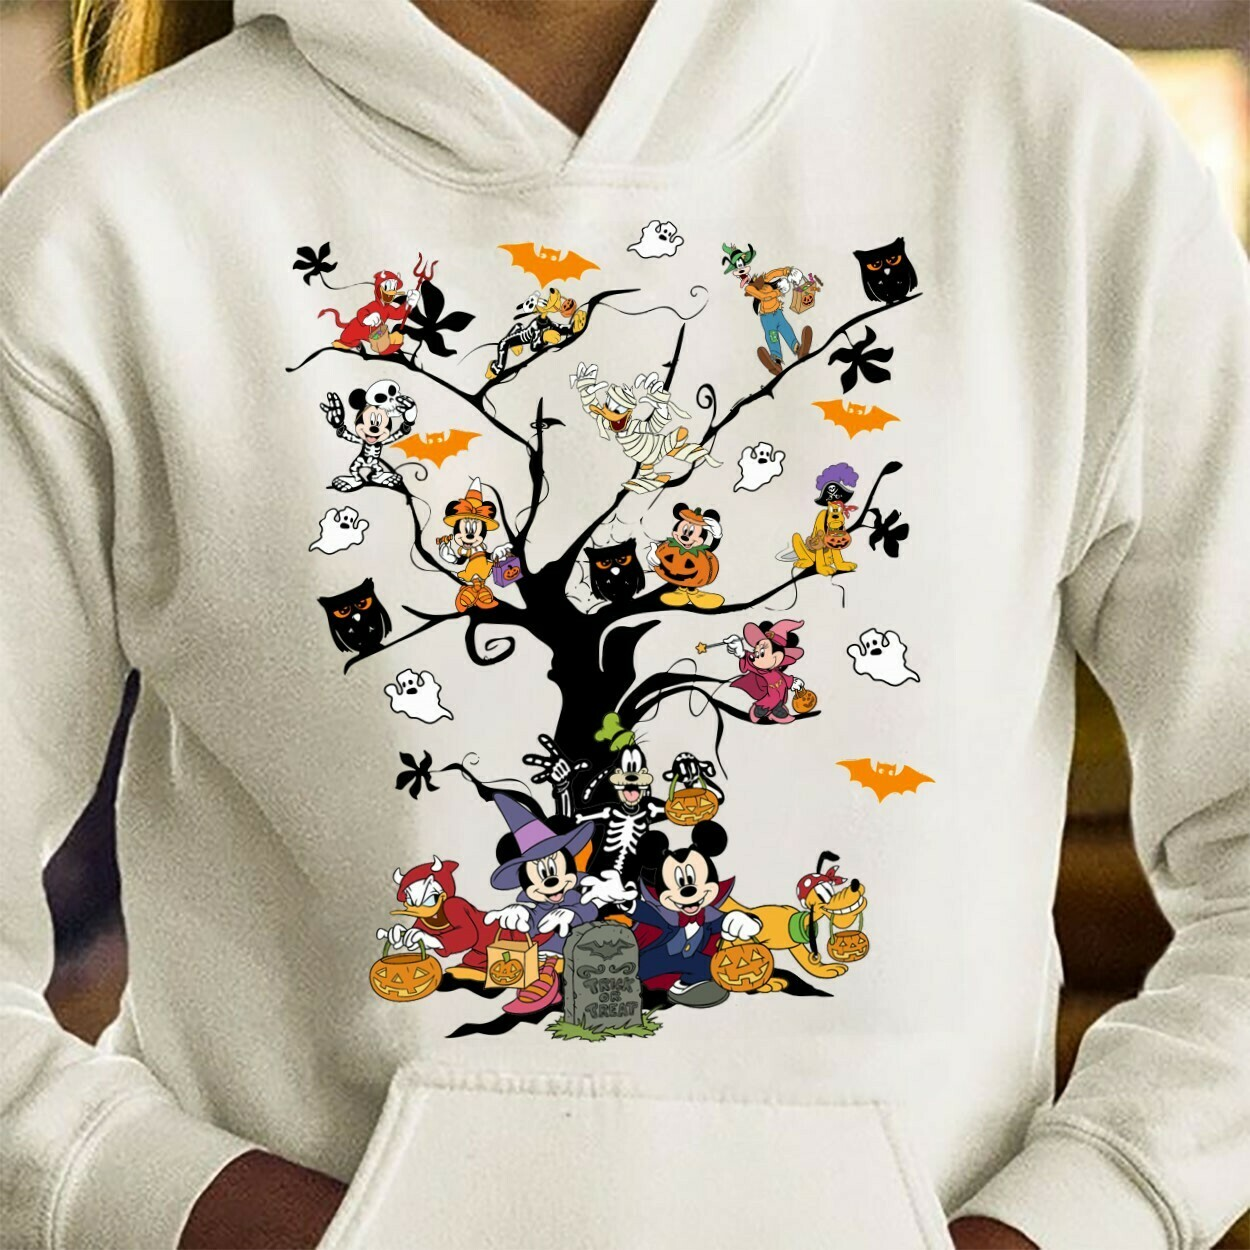 Disney Mickey Mouse And Friends Halloween Tree I'm going to Walt Disney Vacation Family Let's Go to Disney World Disneyland Tee Park T Shirt Long Sleeve Sweatshirt Hoodie Jolly Family Gifts